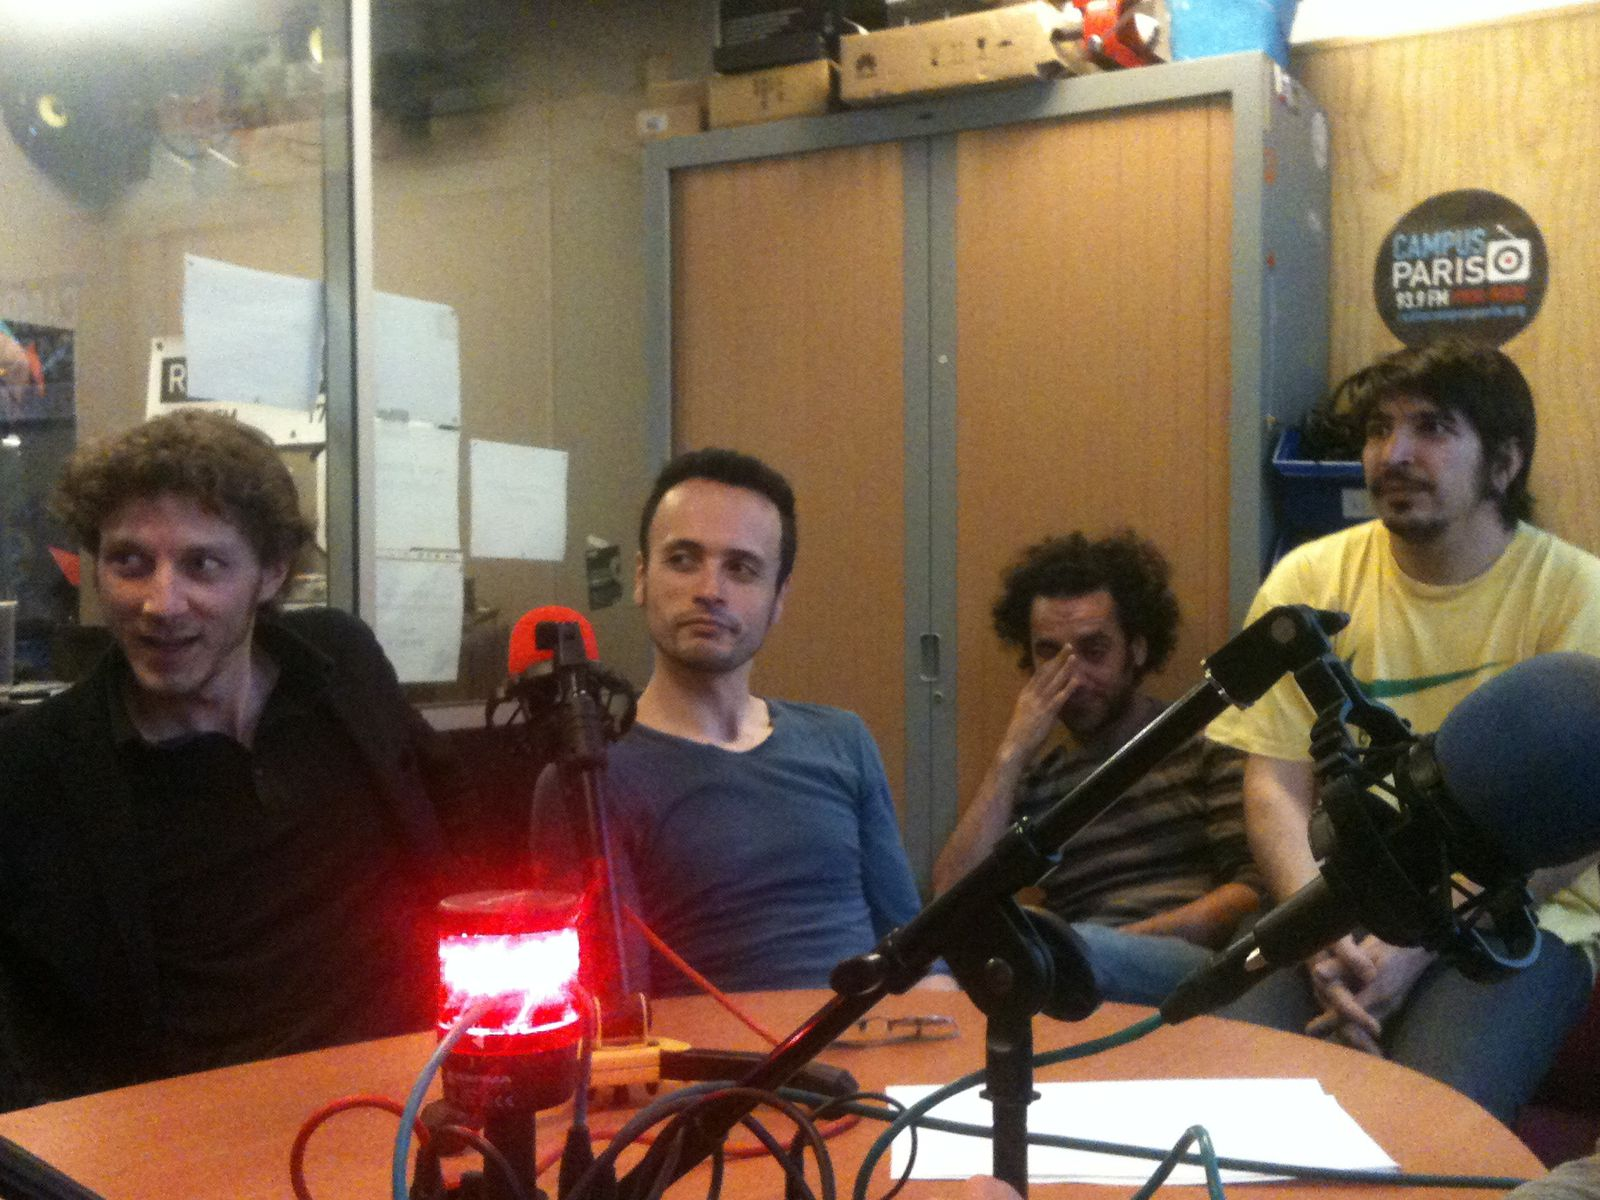 La der des Der : Paris Tout Nu (radio campus paris)